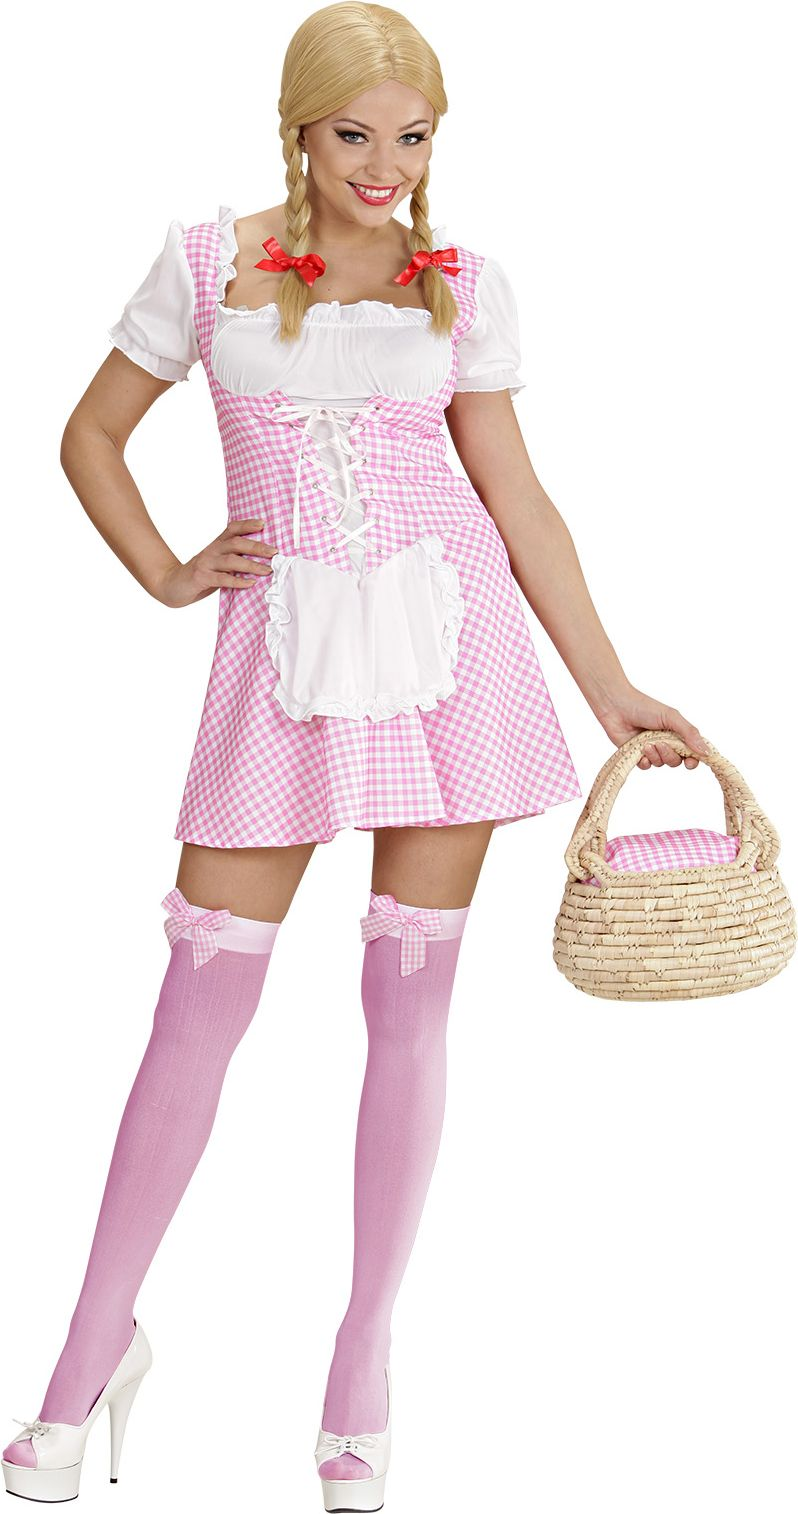 Miss Muffet outfit roze